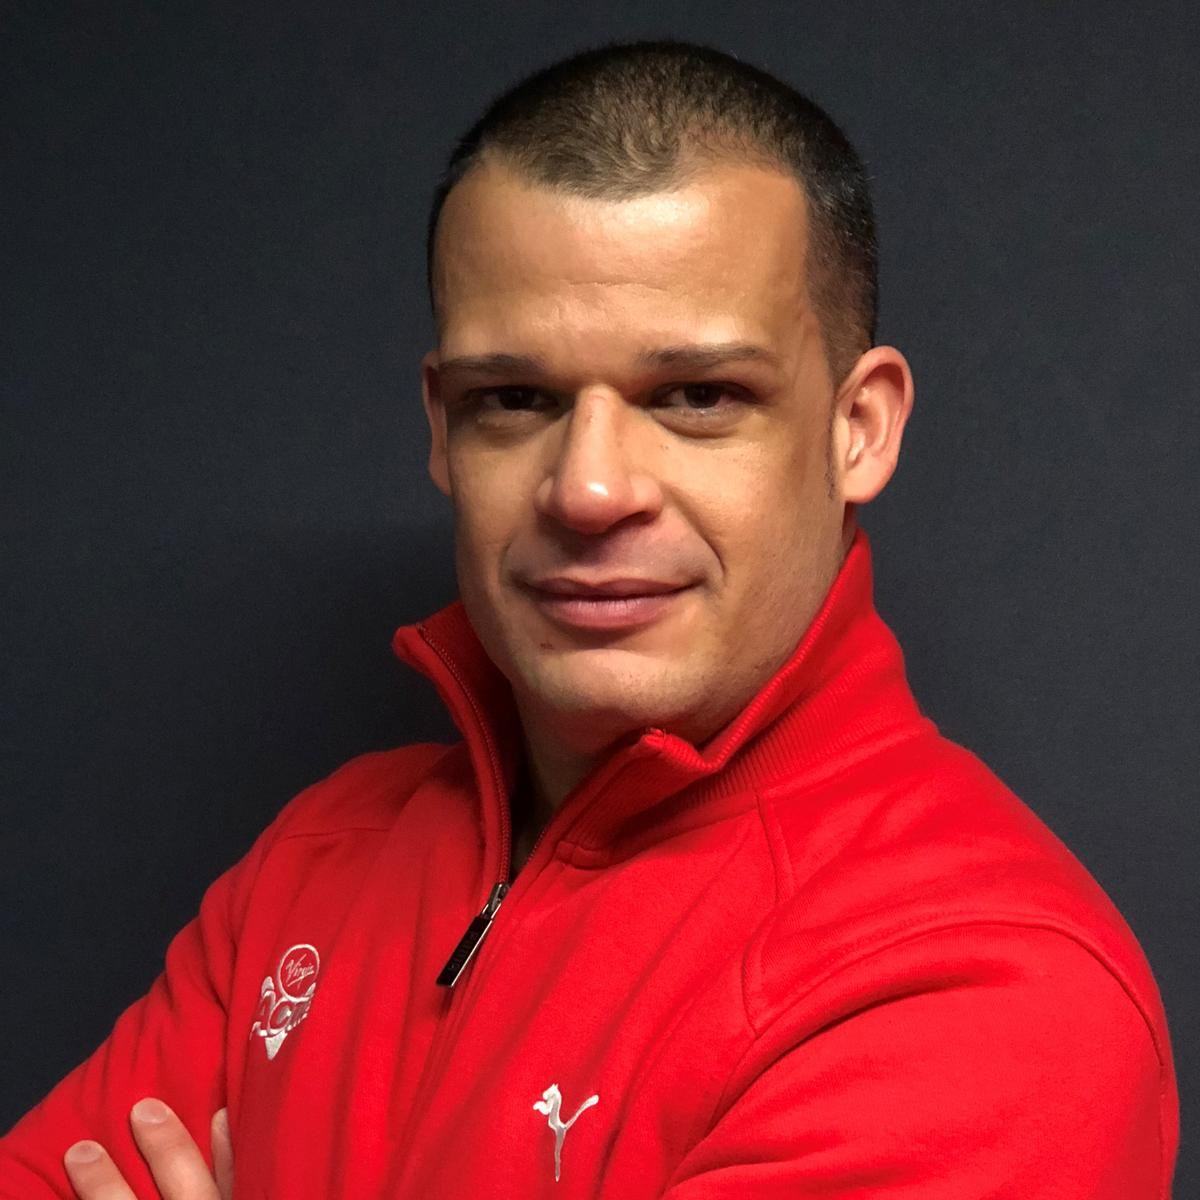 Virgin Active's Head of Group Exercise Israel Rivera